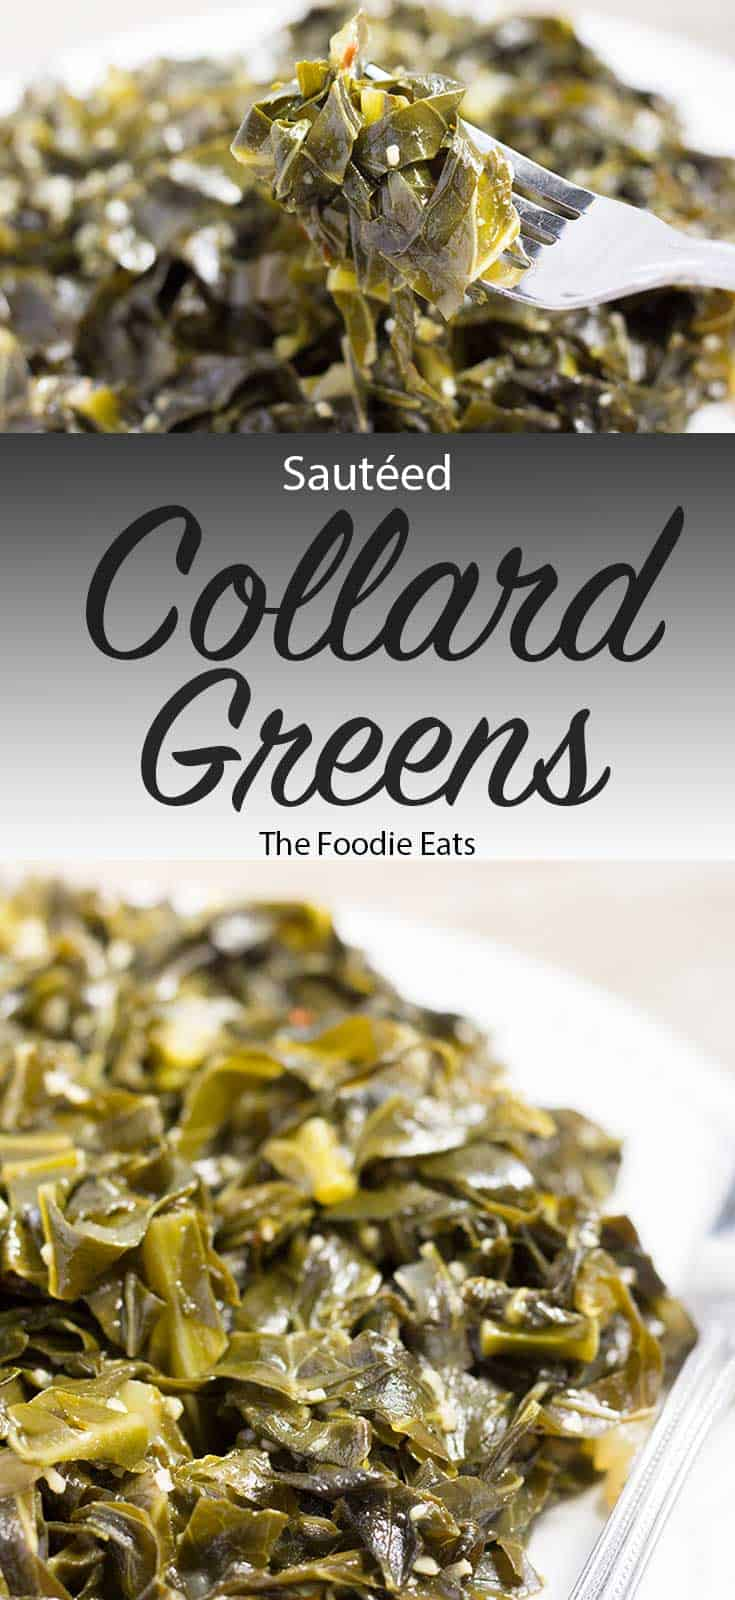 Sautéed Collard Greens | The Foodie Eats